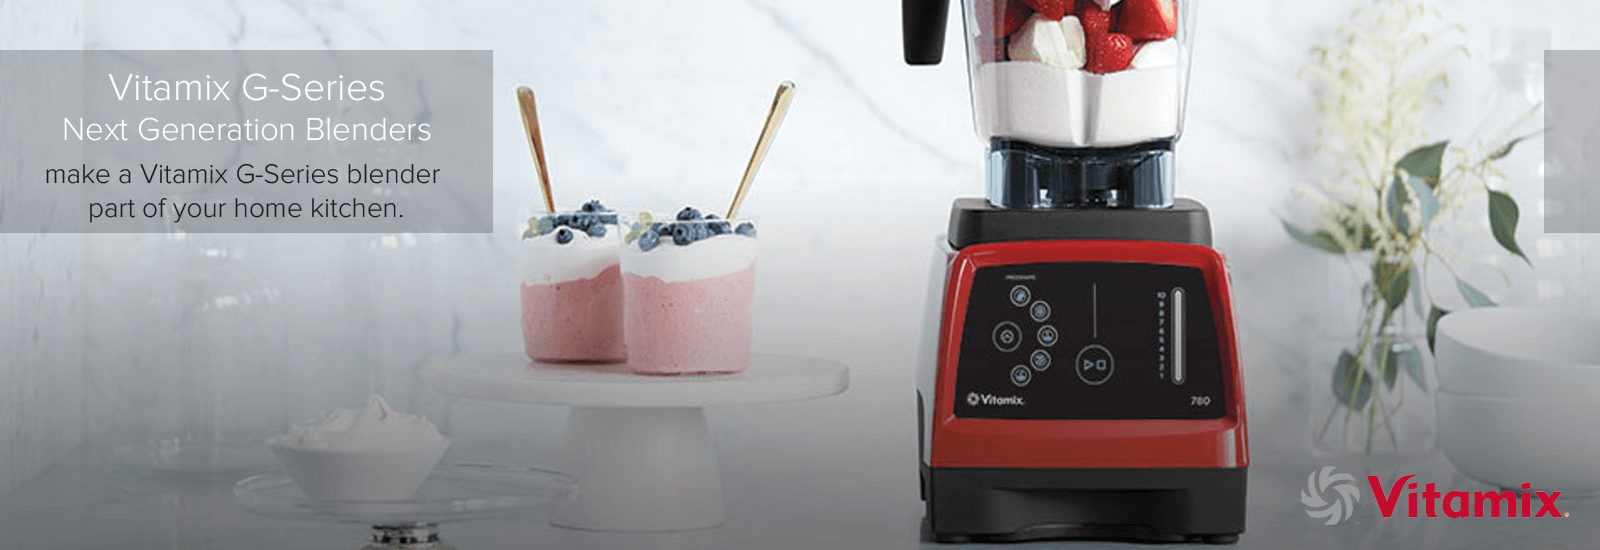 Vitamix G- Series banner